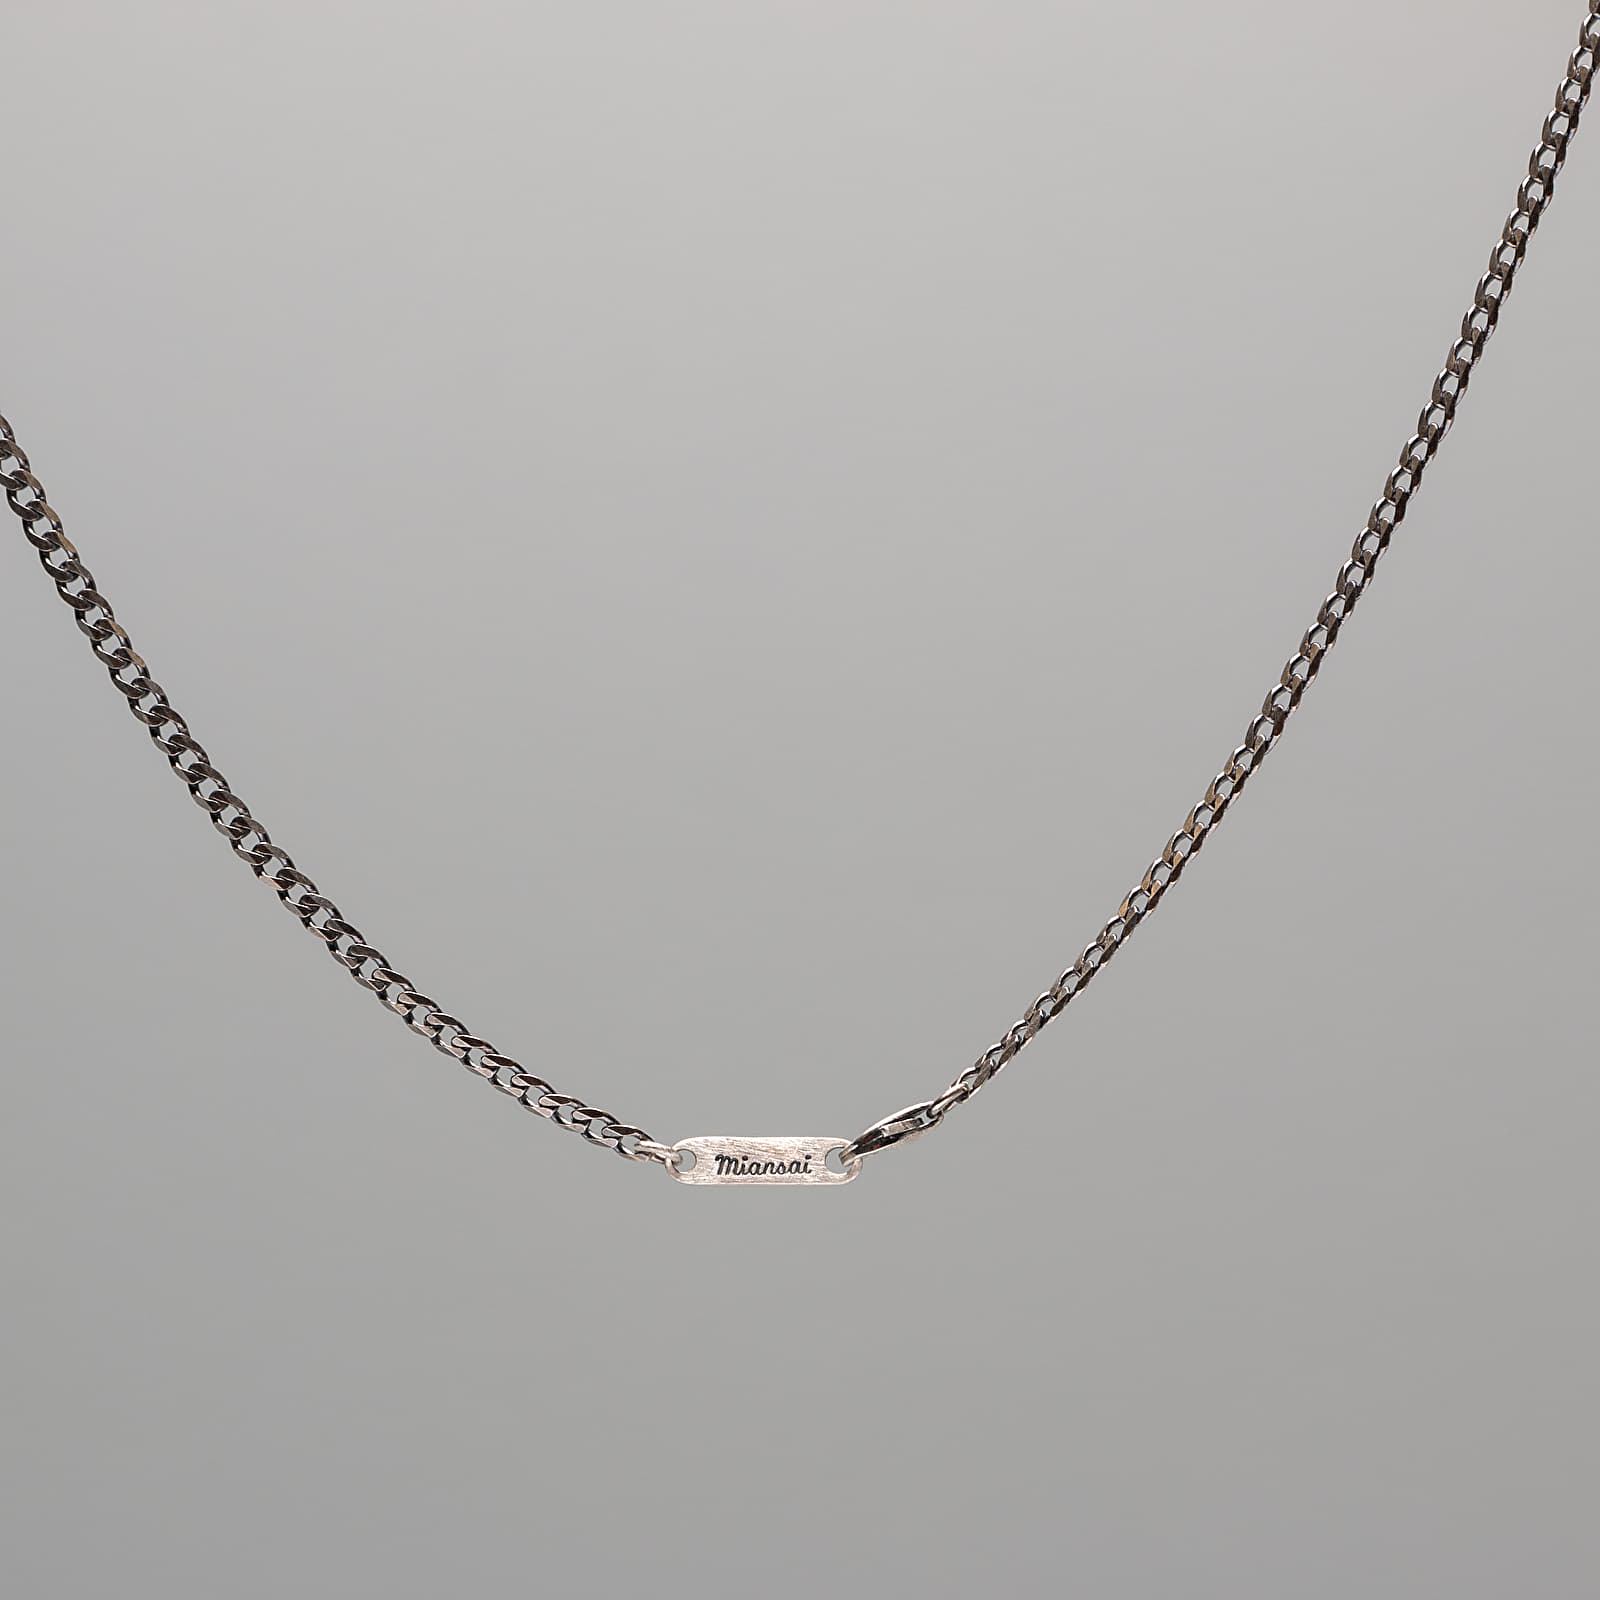 Miansai 3mm Chain Necklace